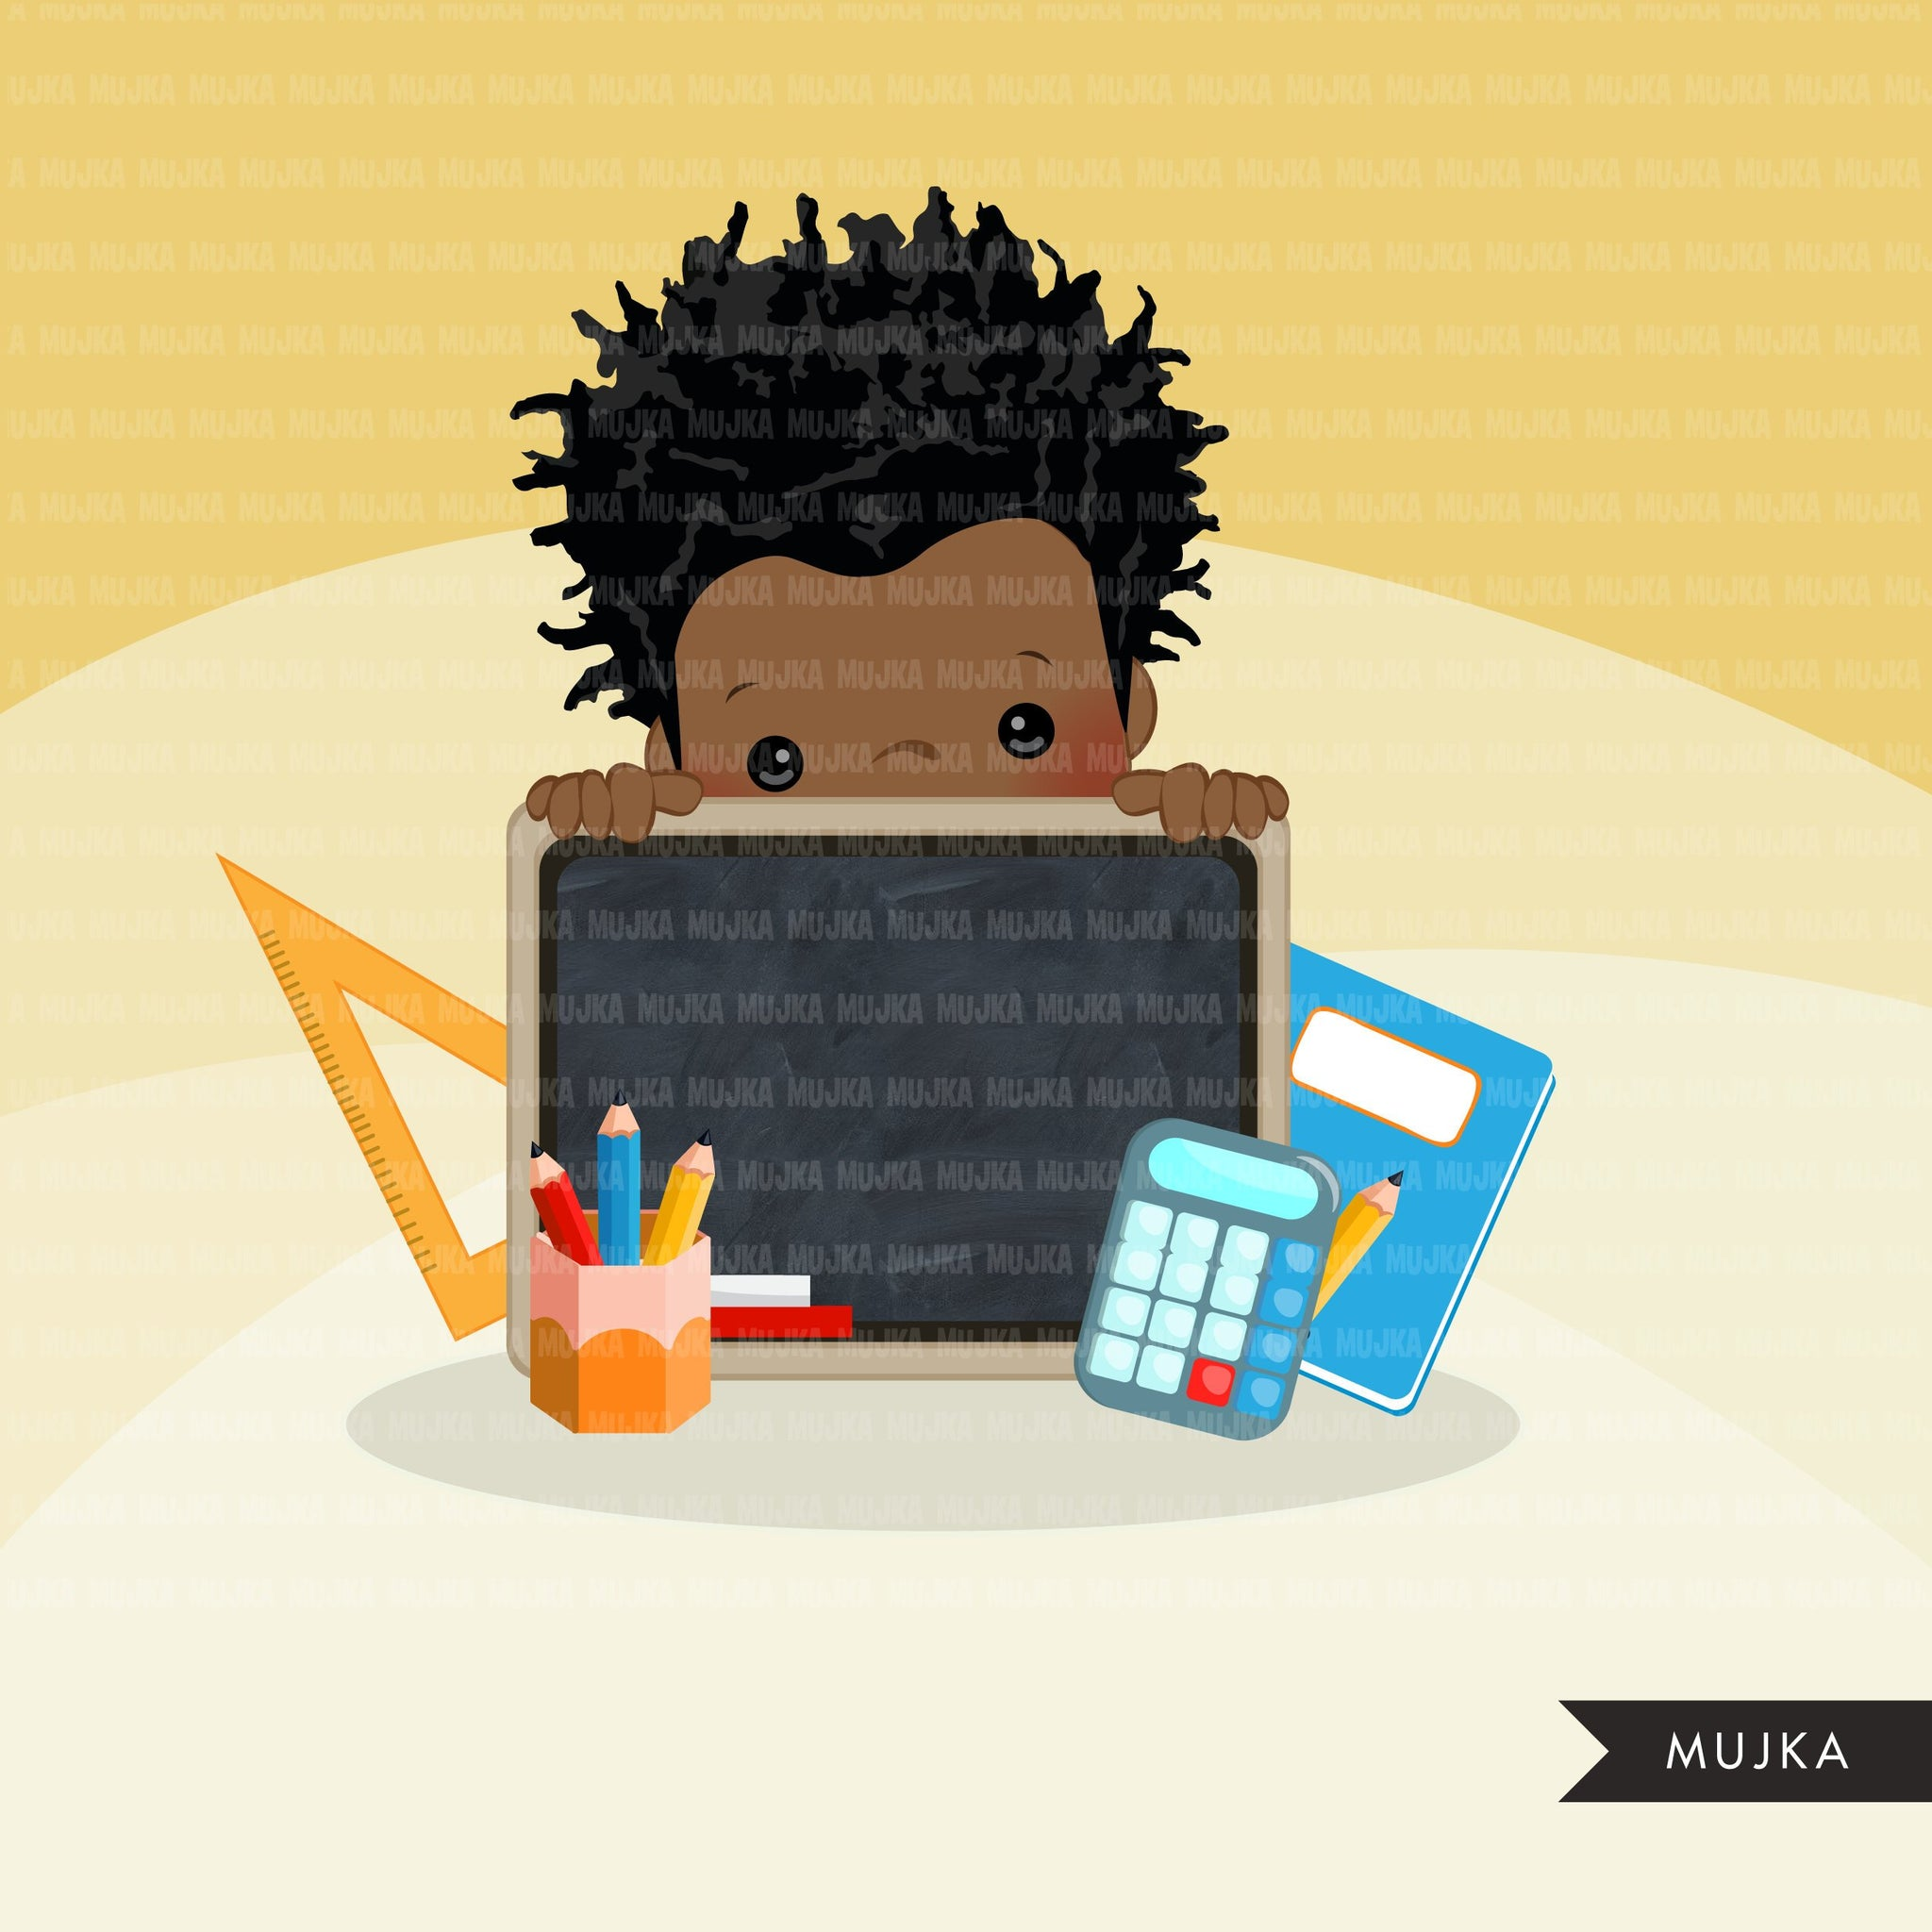 Back to school clipart peeking dark skin students Afro and boy students black board, Education, teaching graphics, PRE-K, grade 1